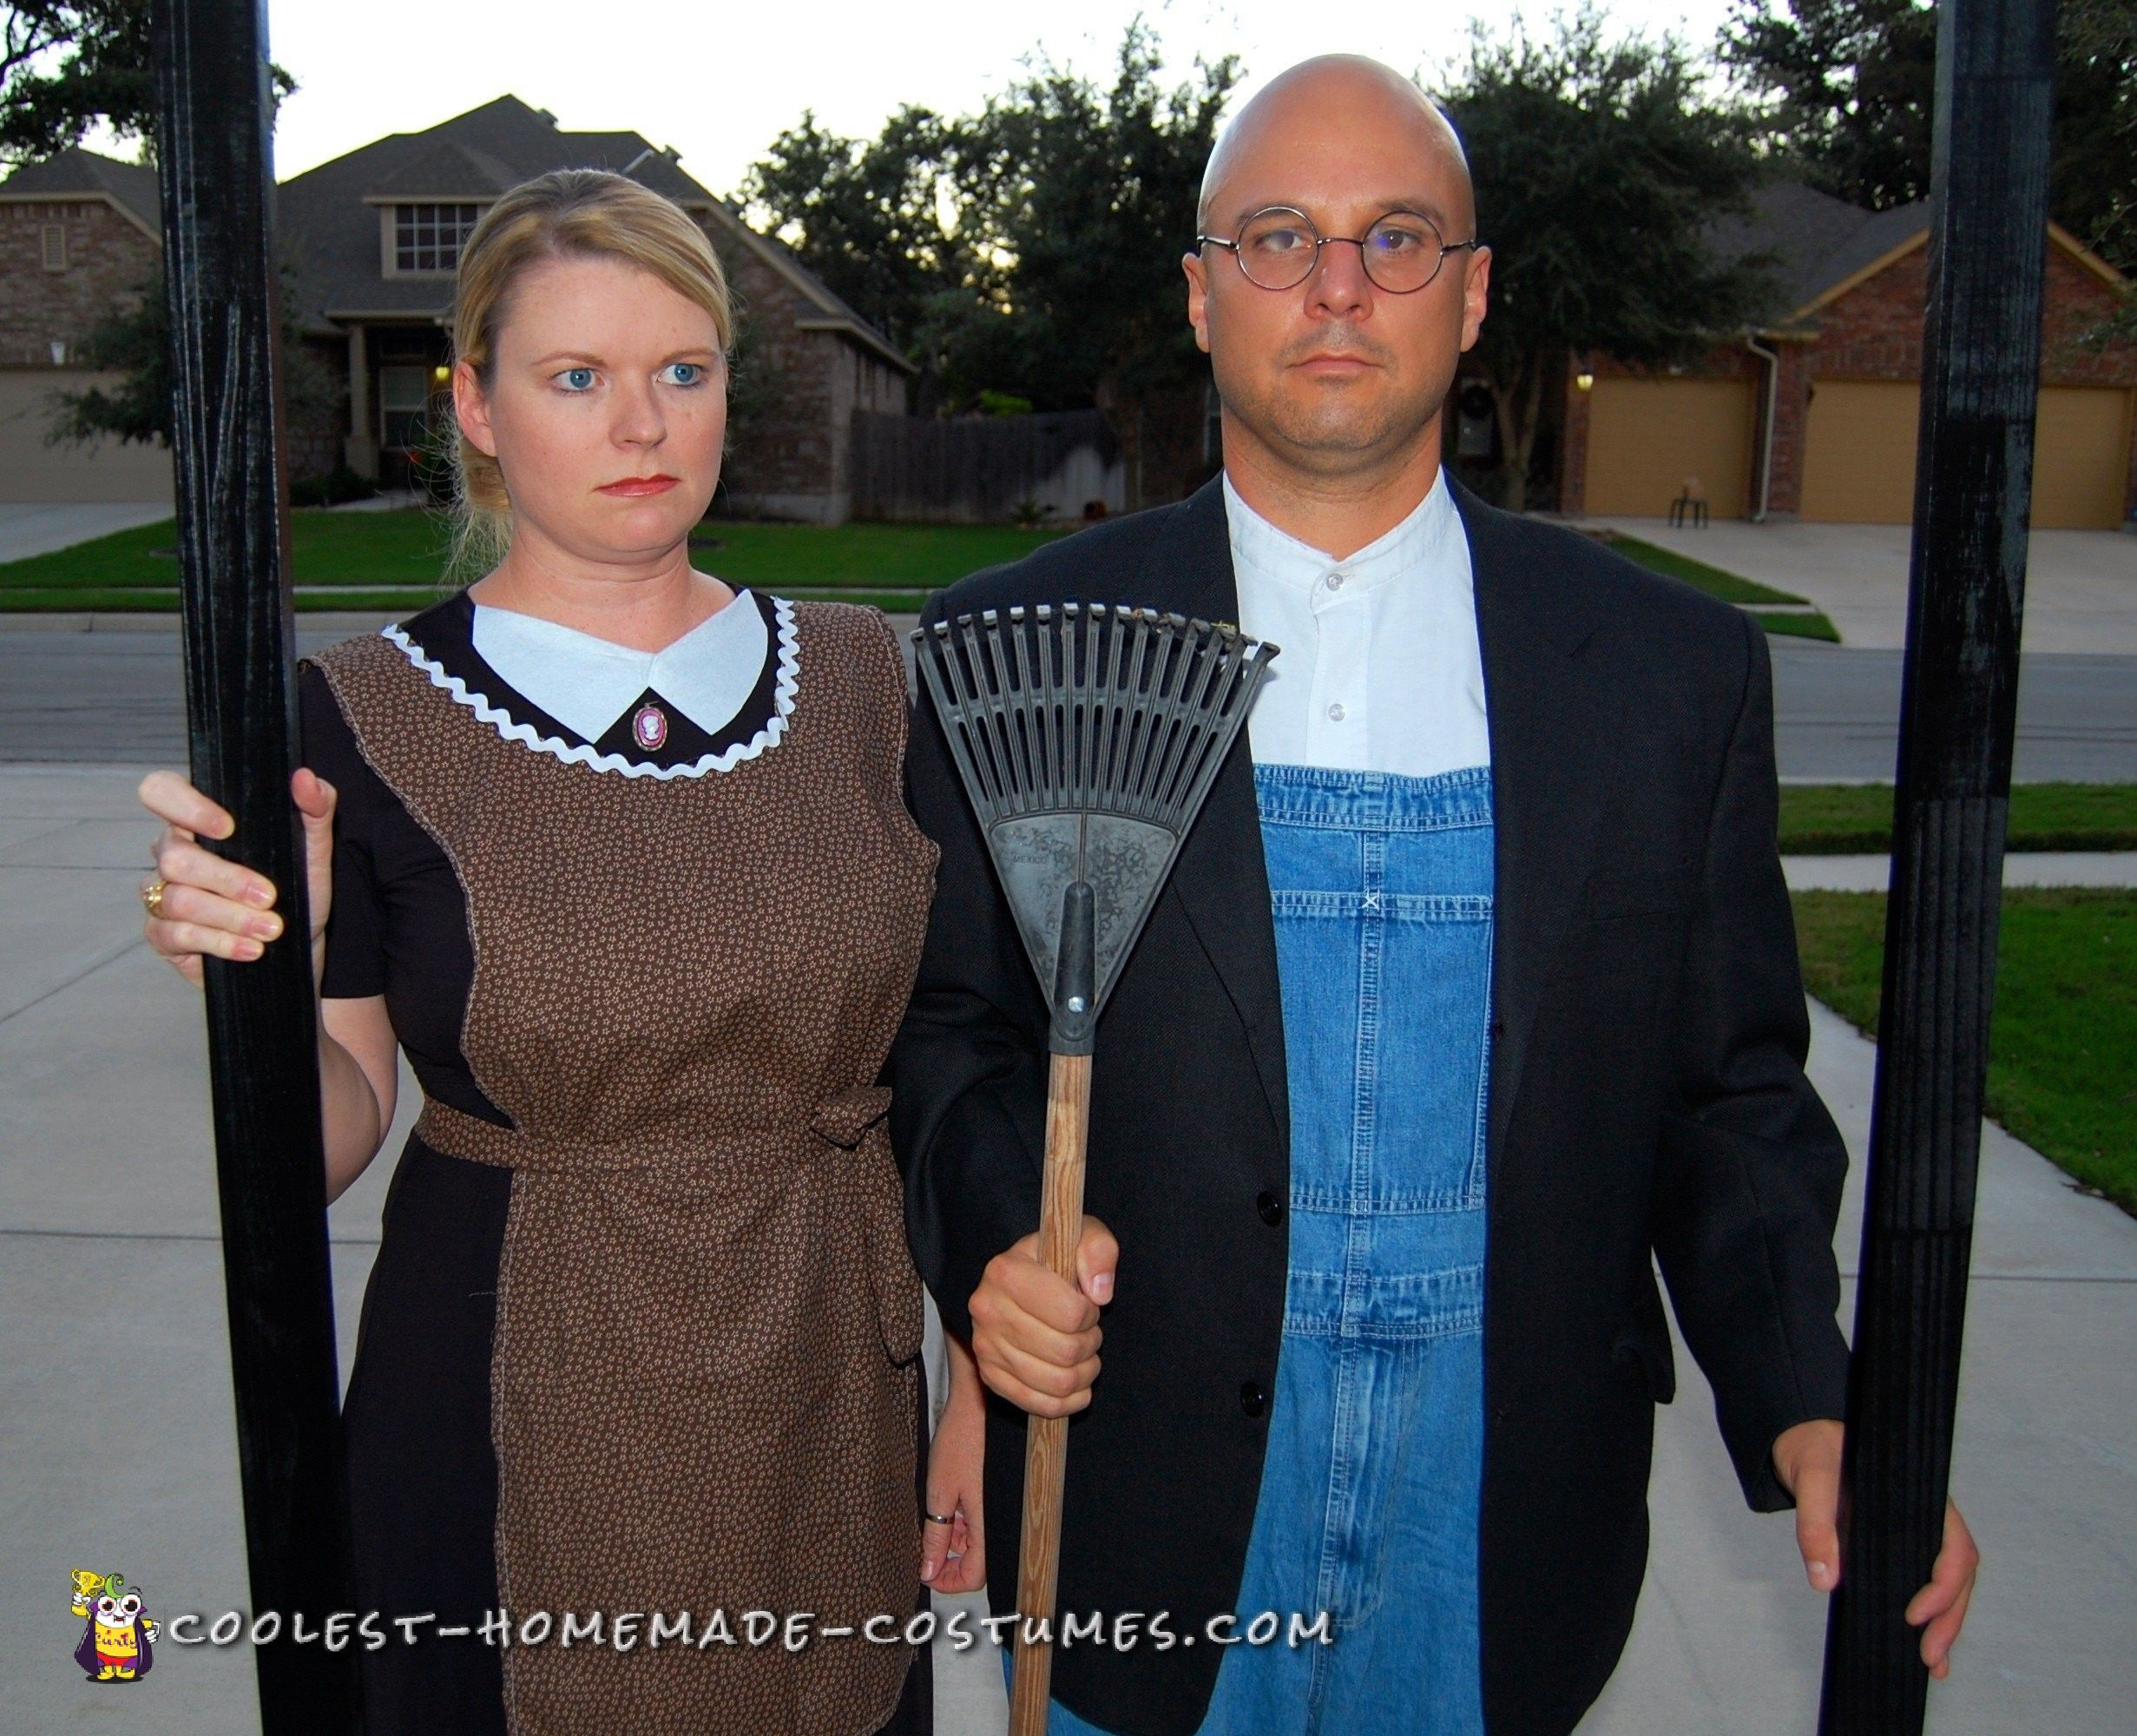 American gothic painting couples costume for you. | The Dating Divas